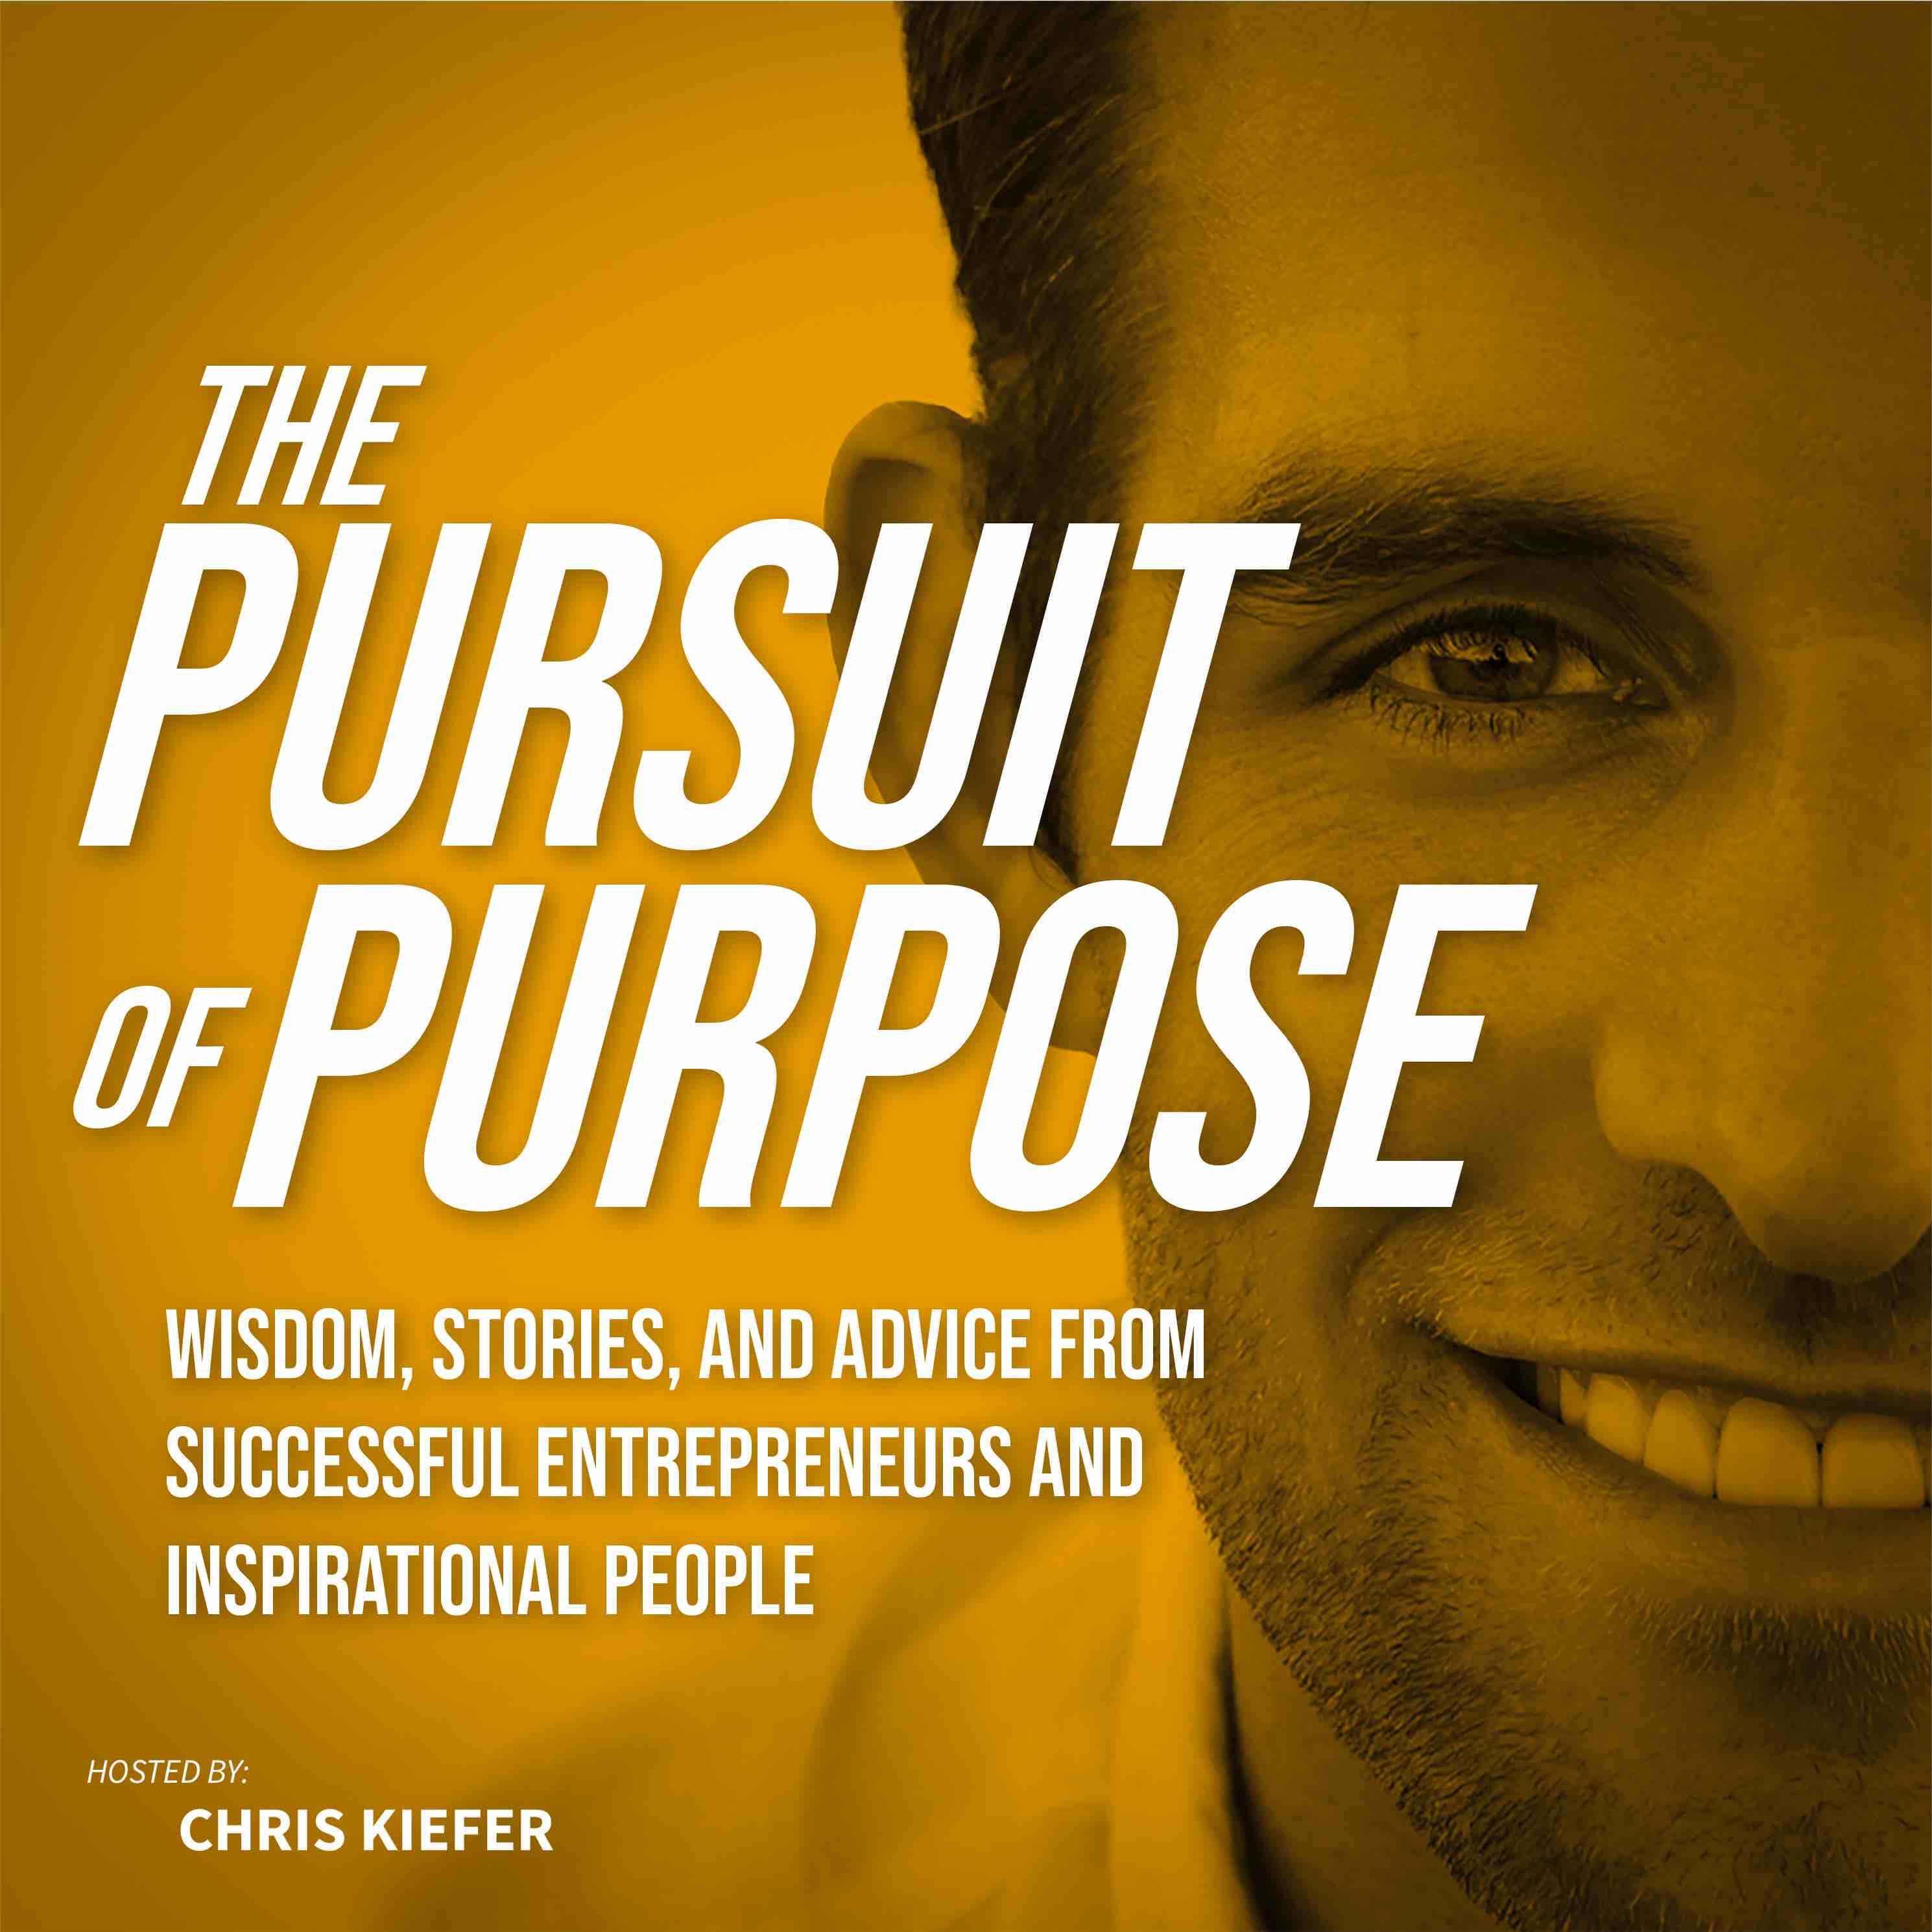 The Pursuit of Purpose